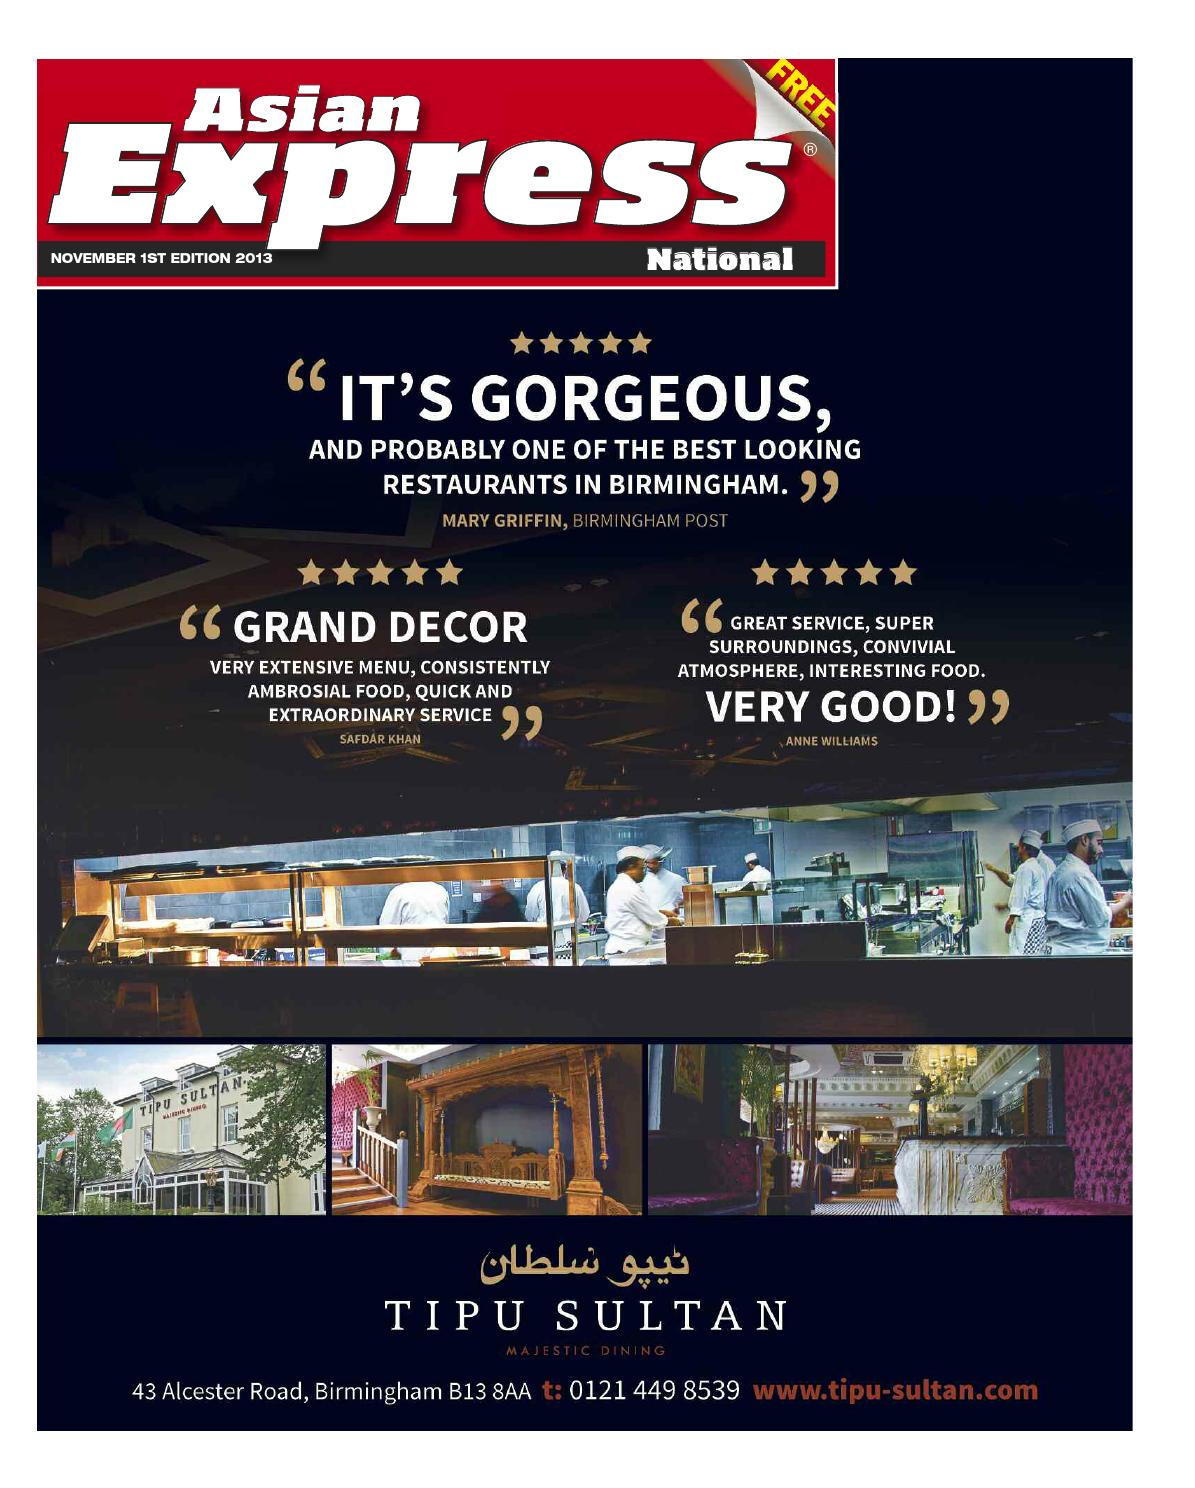 Asian Express National - November Edition 2013 by Asian Expres - issuu